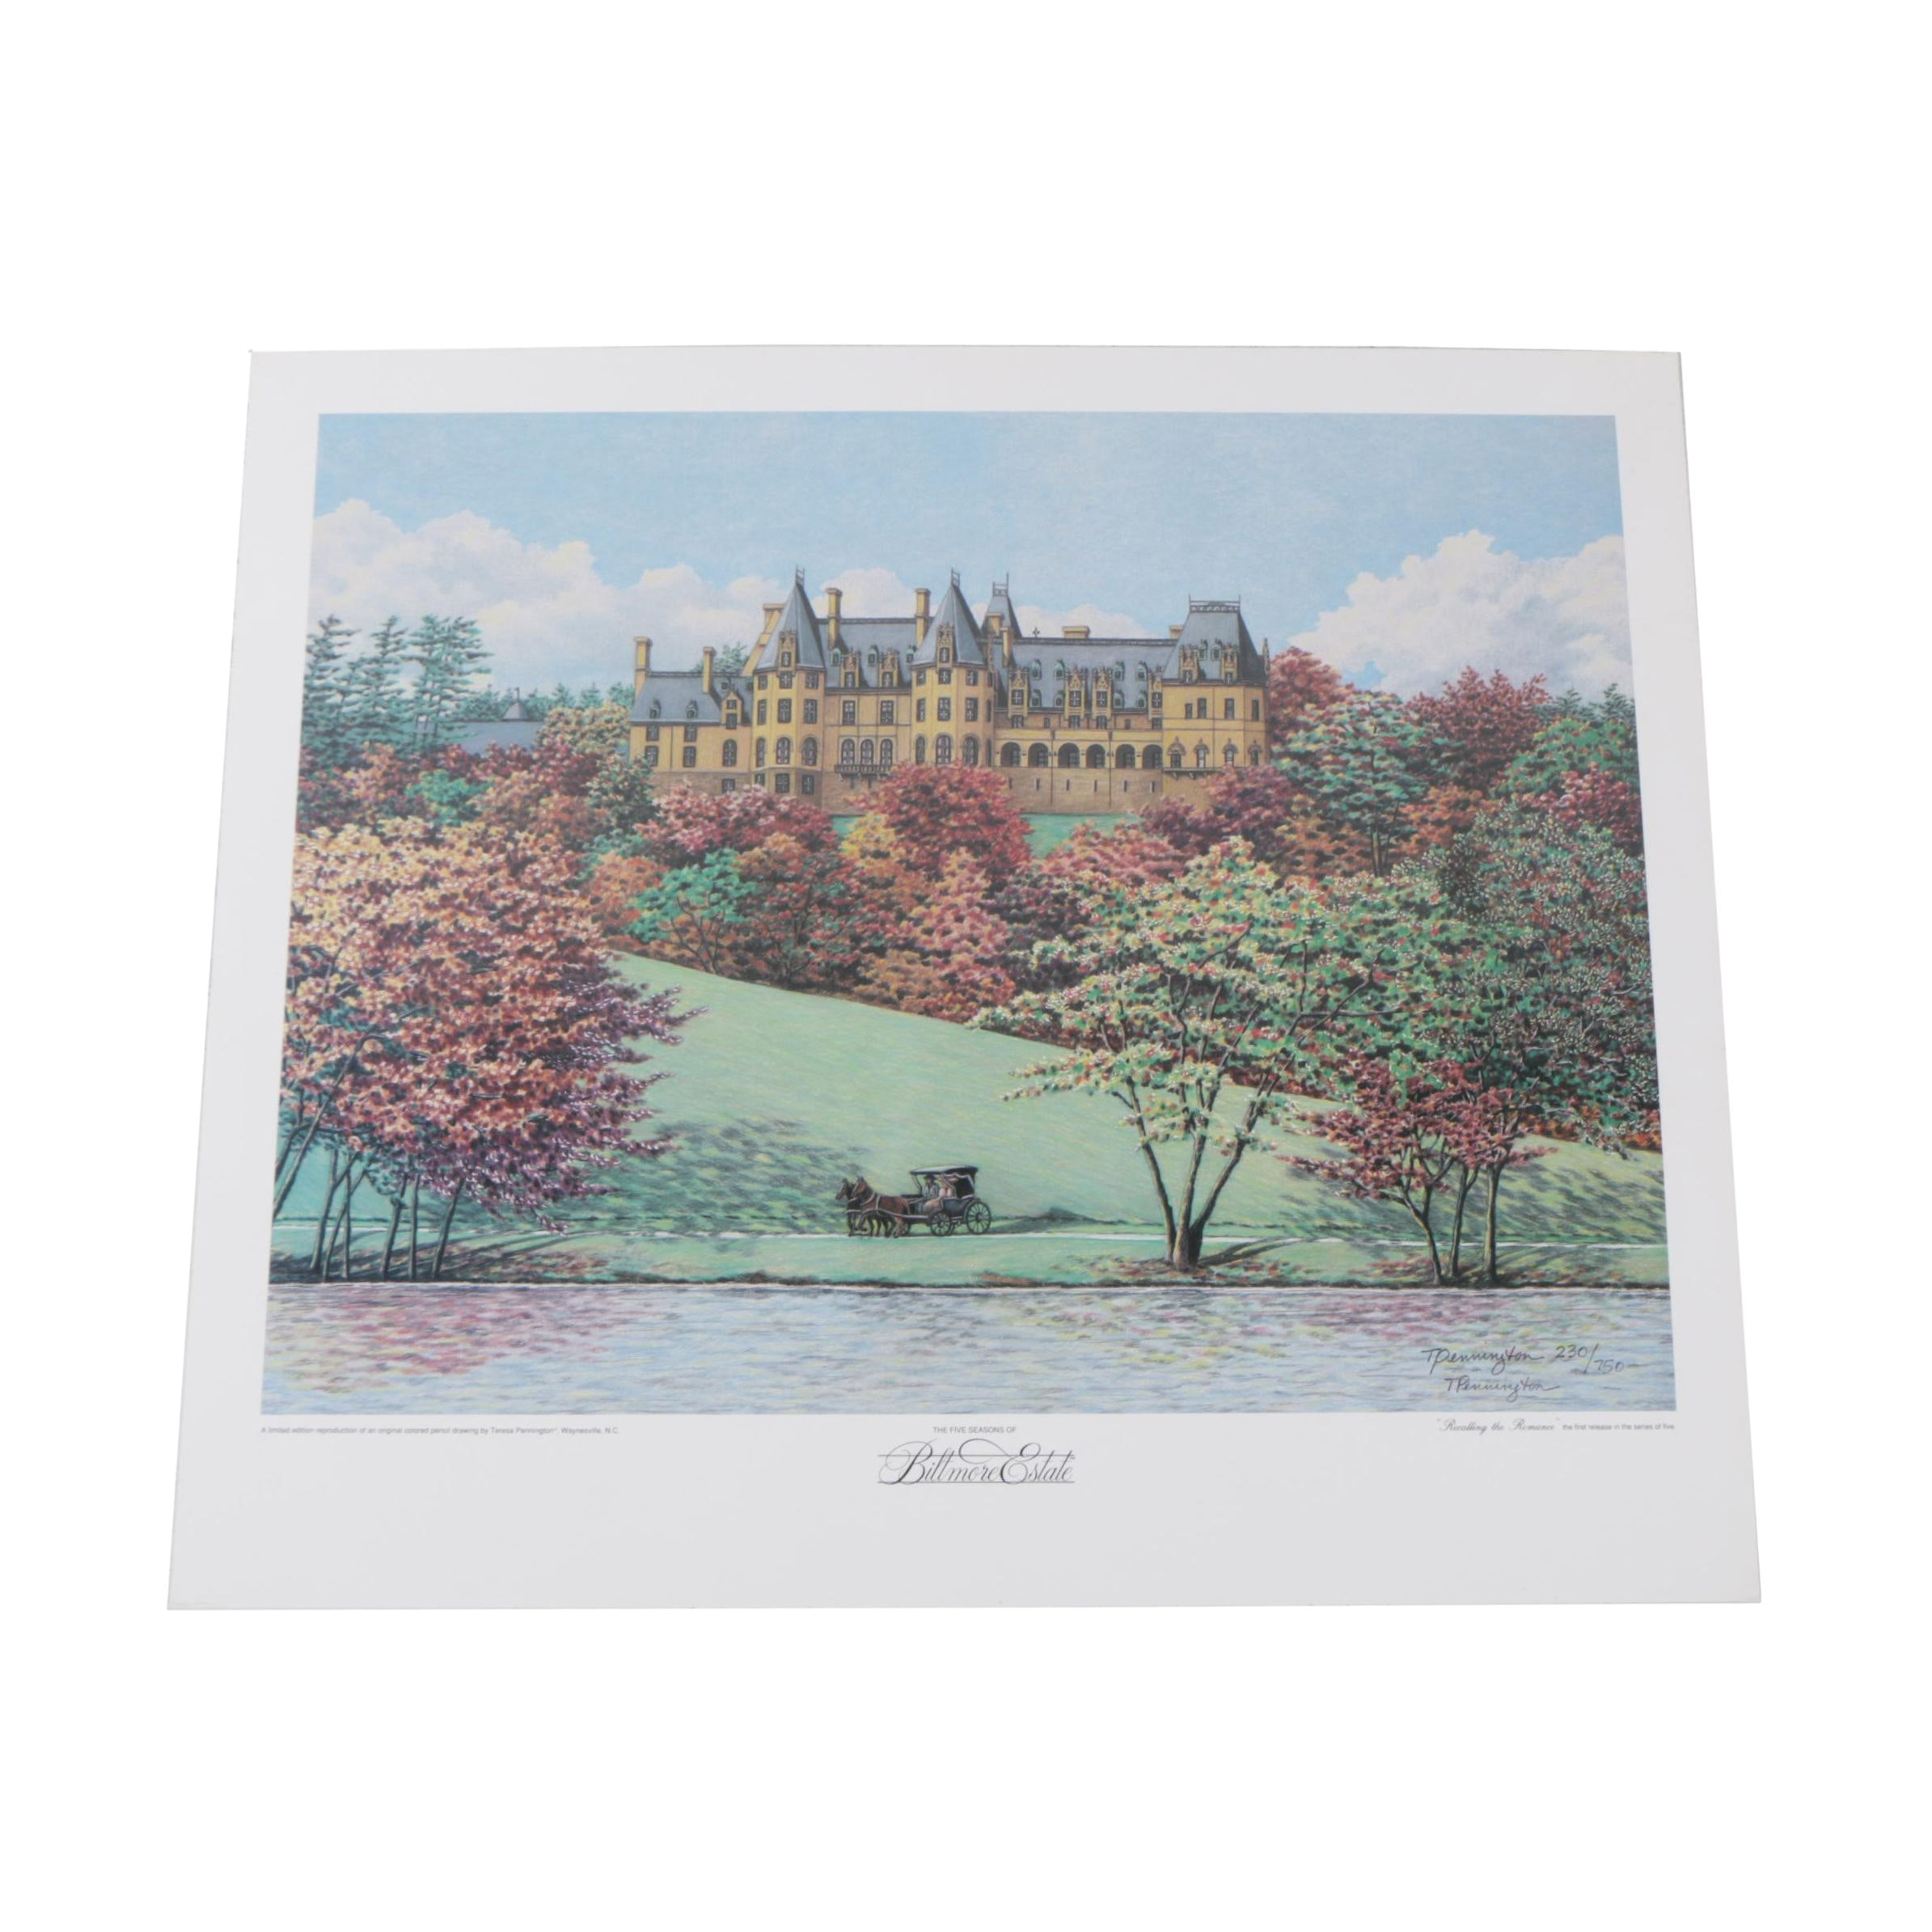 Teresa Pennington Limited Edition Offset Lithograph of the Biltmore Estate